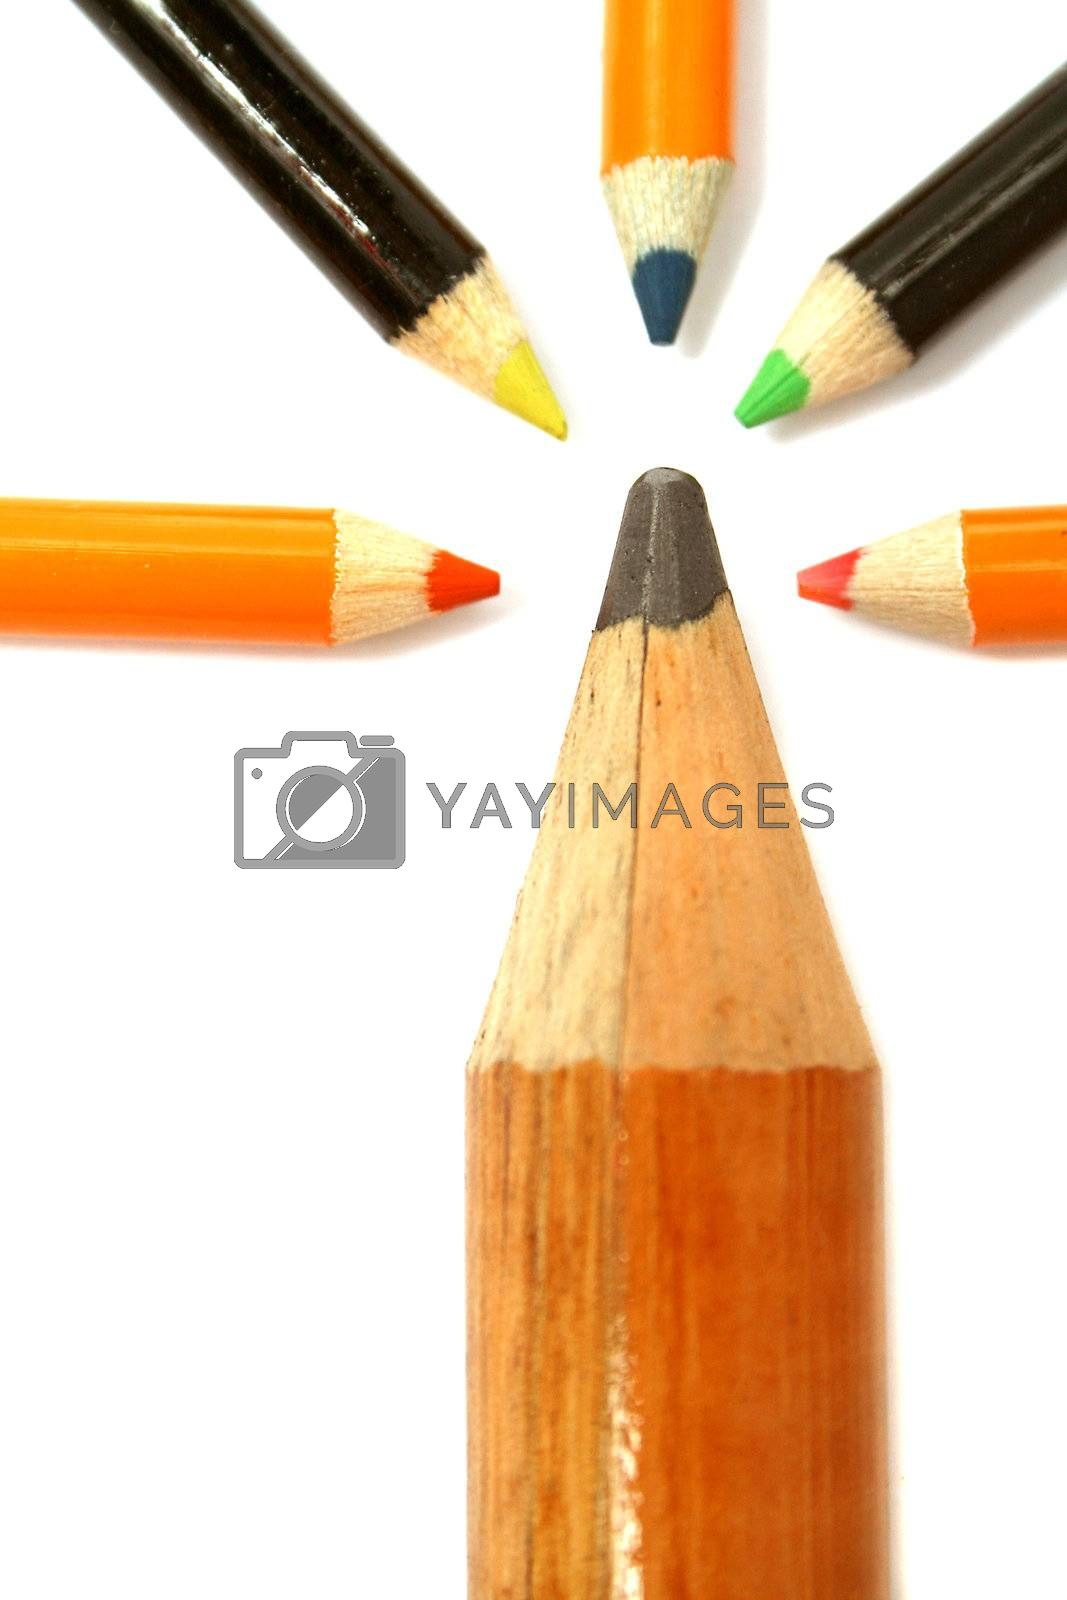 The big pencil and five small color pencils on a vertical 4